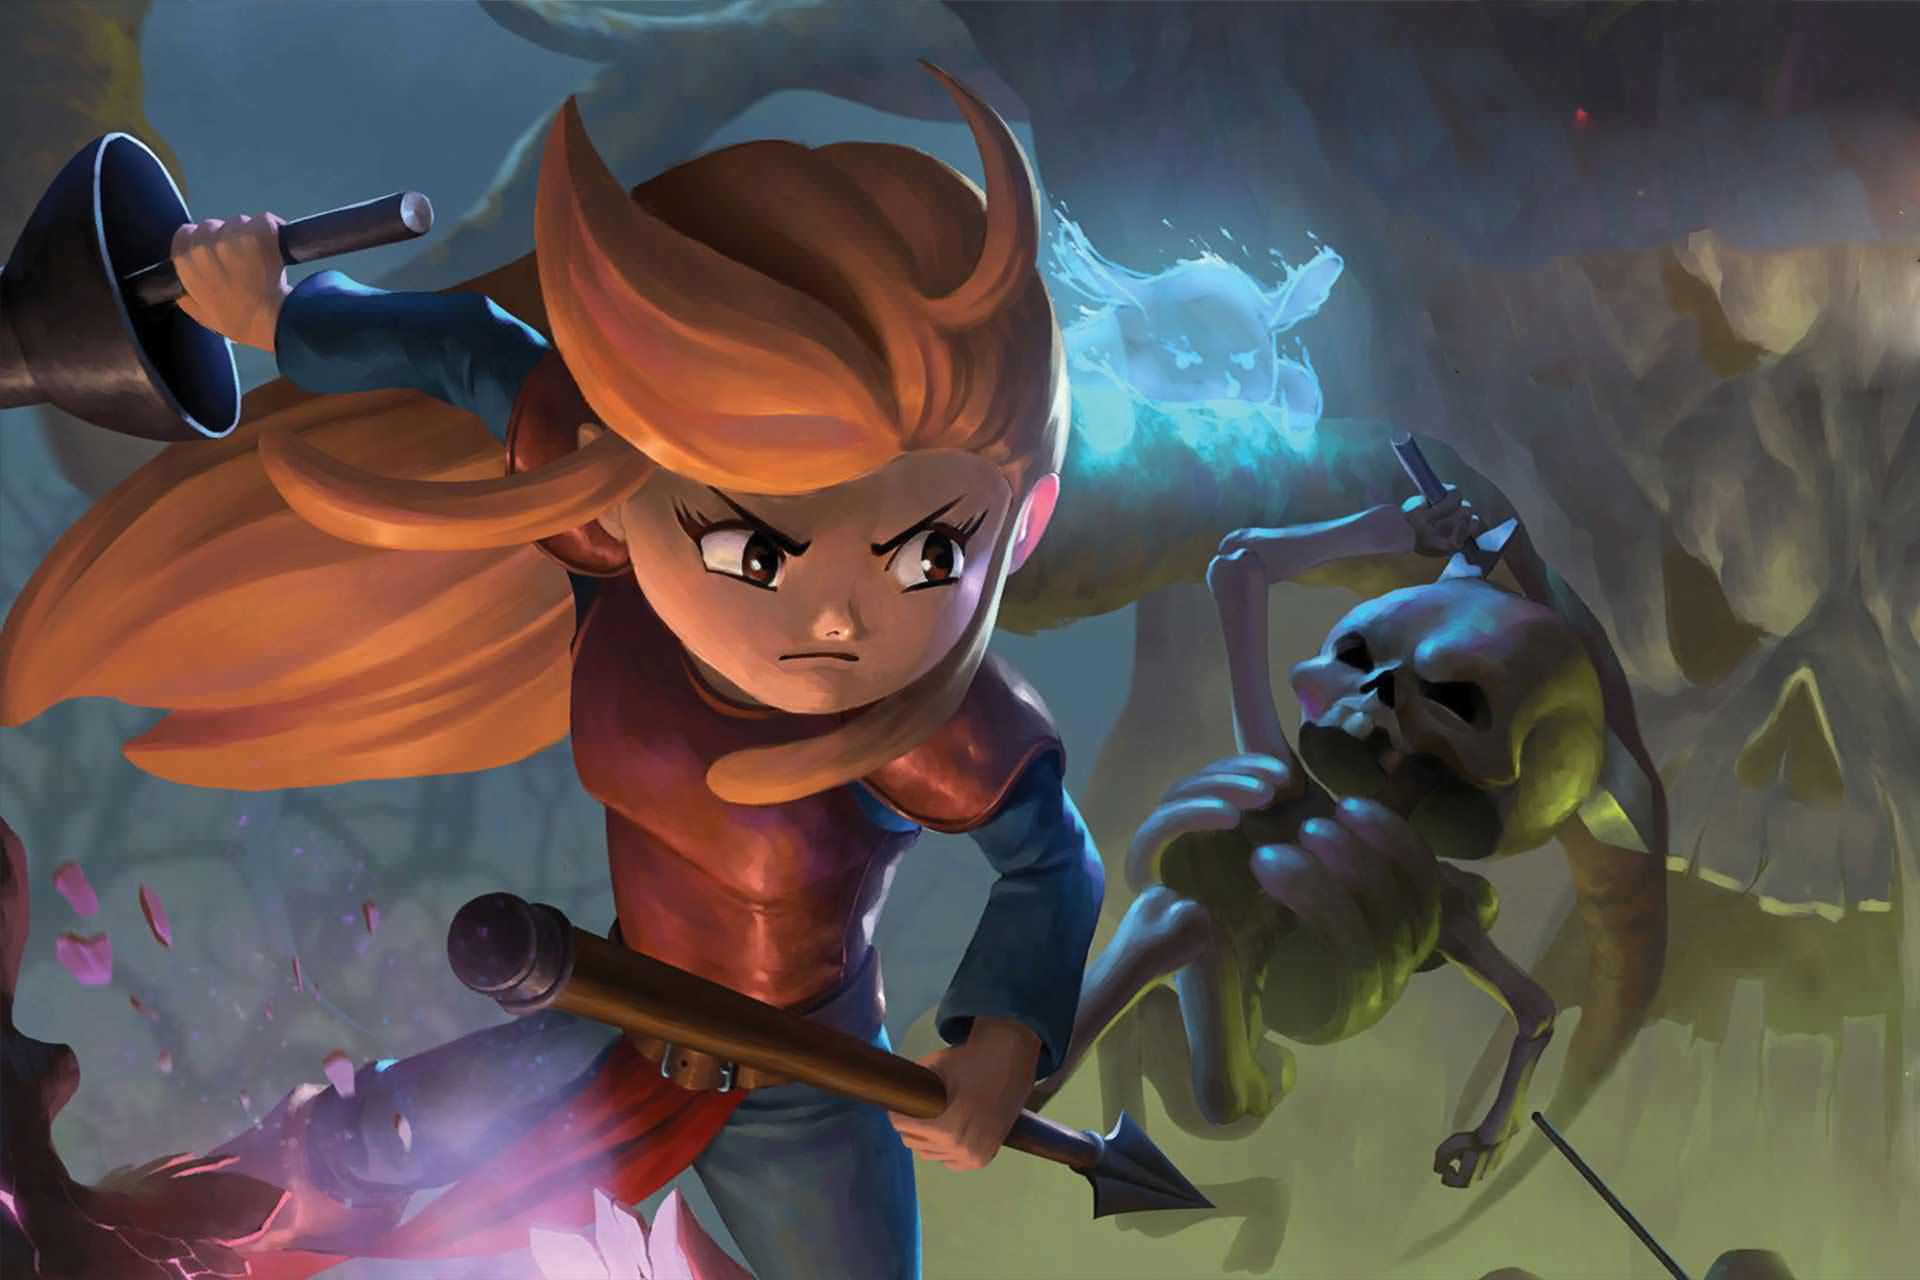 بررسی بازی Battle Princess Madelyn